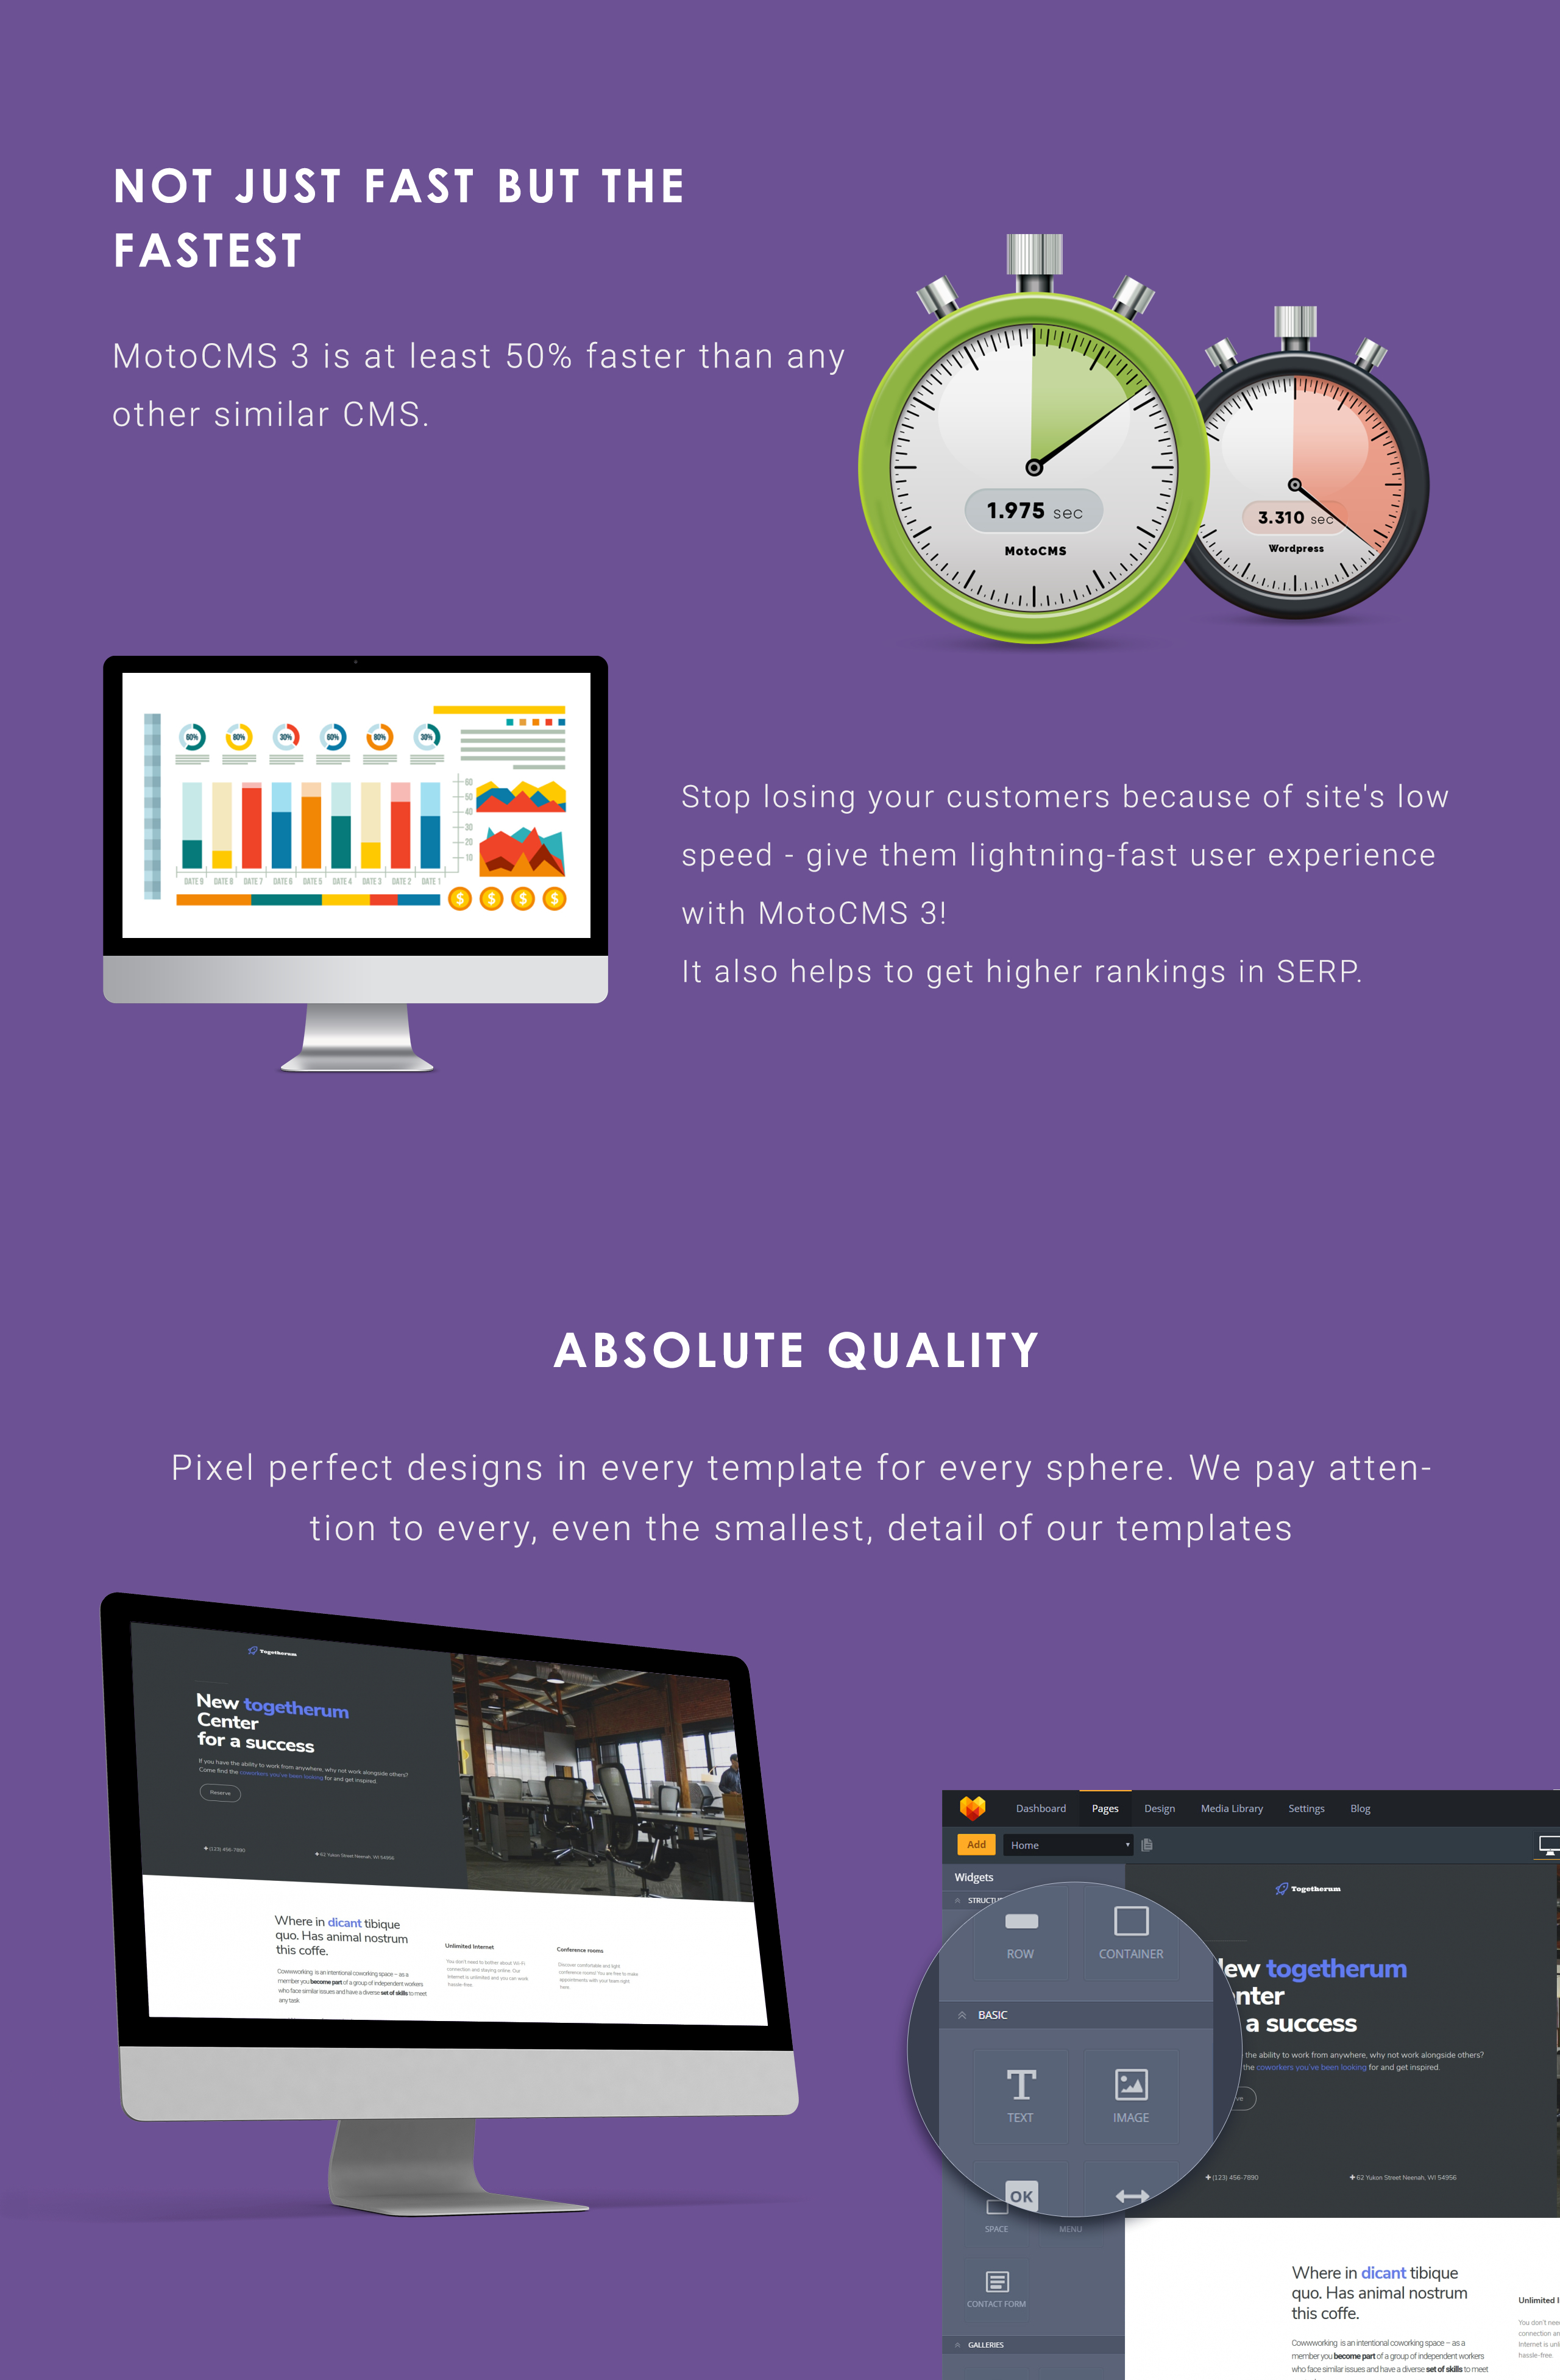 Togetherum - Coworking Centre Moto CMS 3 Template